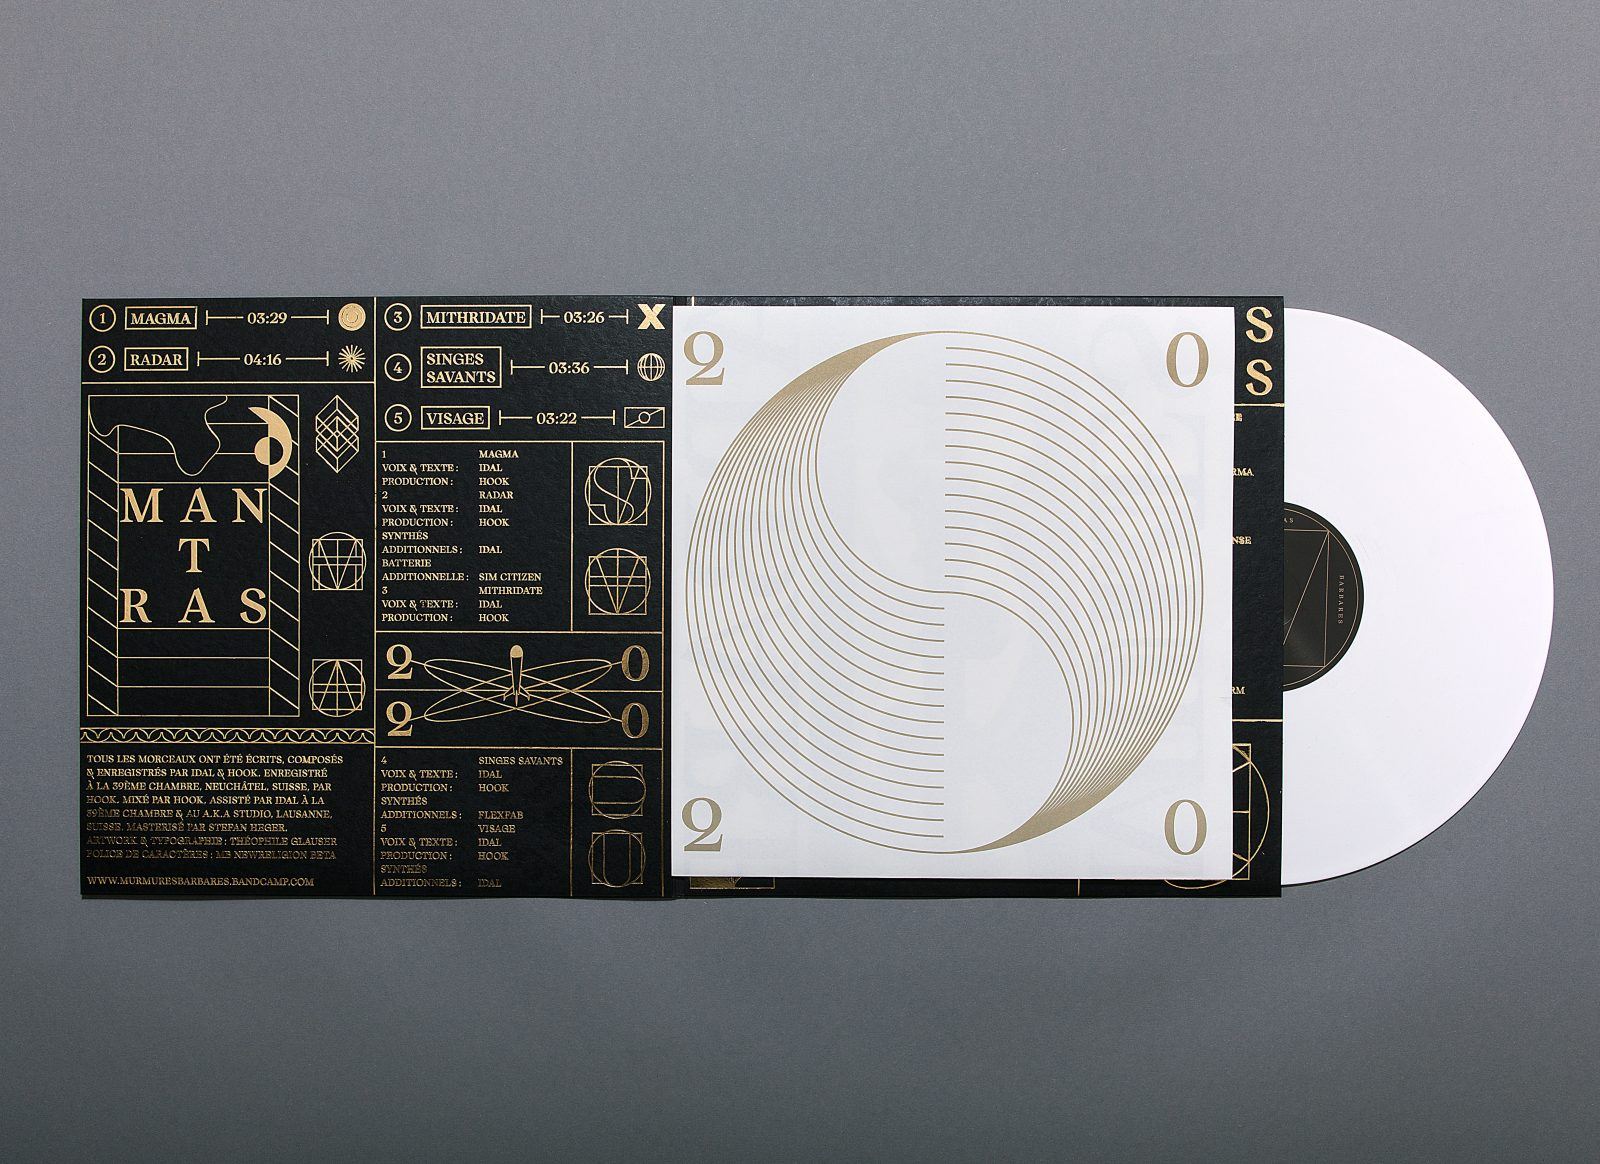 Mantras Album Package Design Inspired by Duality & Modern Religion